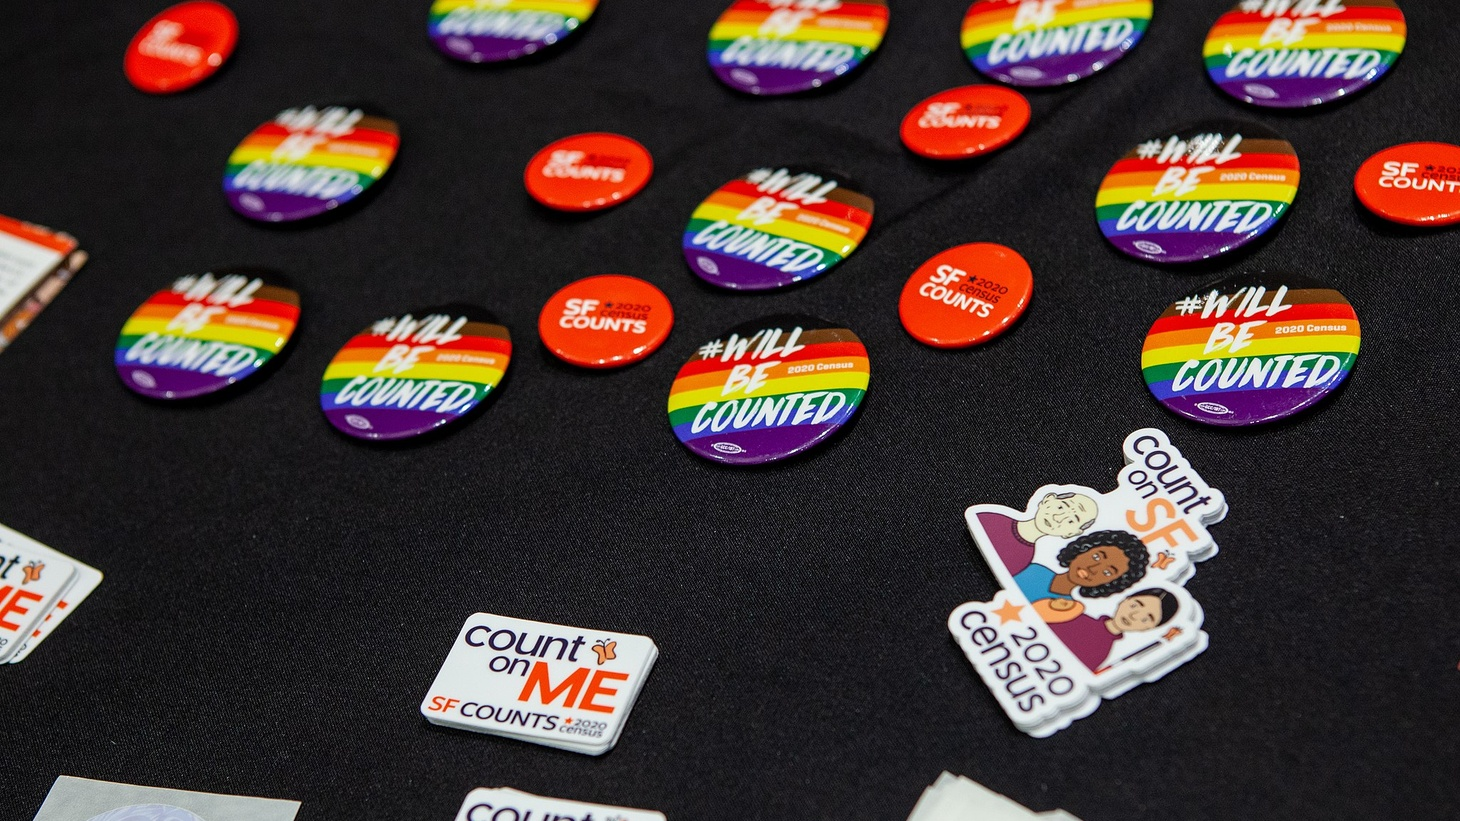 Buttons and stickers at an event for the 2020 Census and the LGBTQ community in San Francisco.